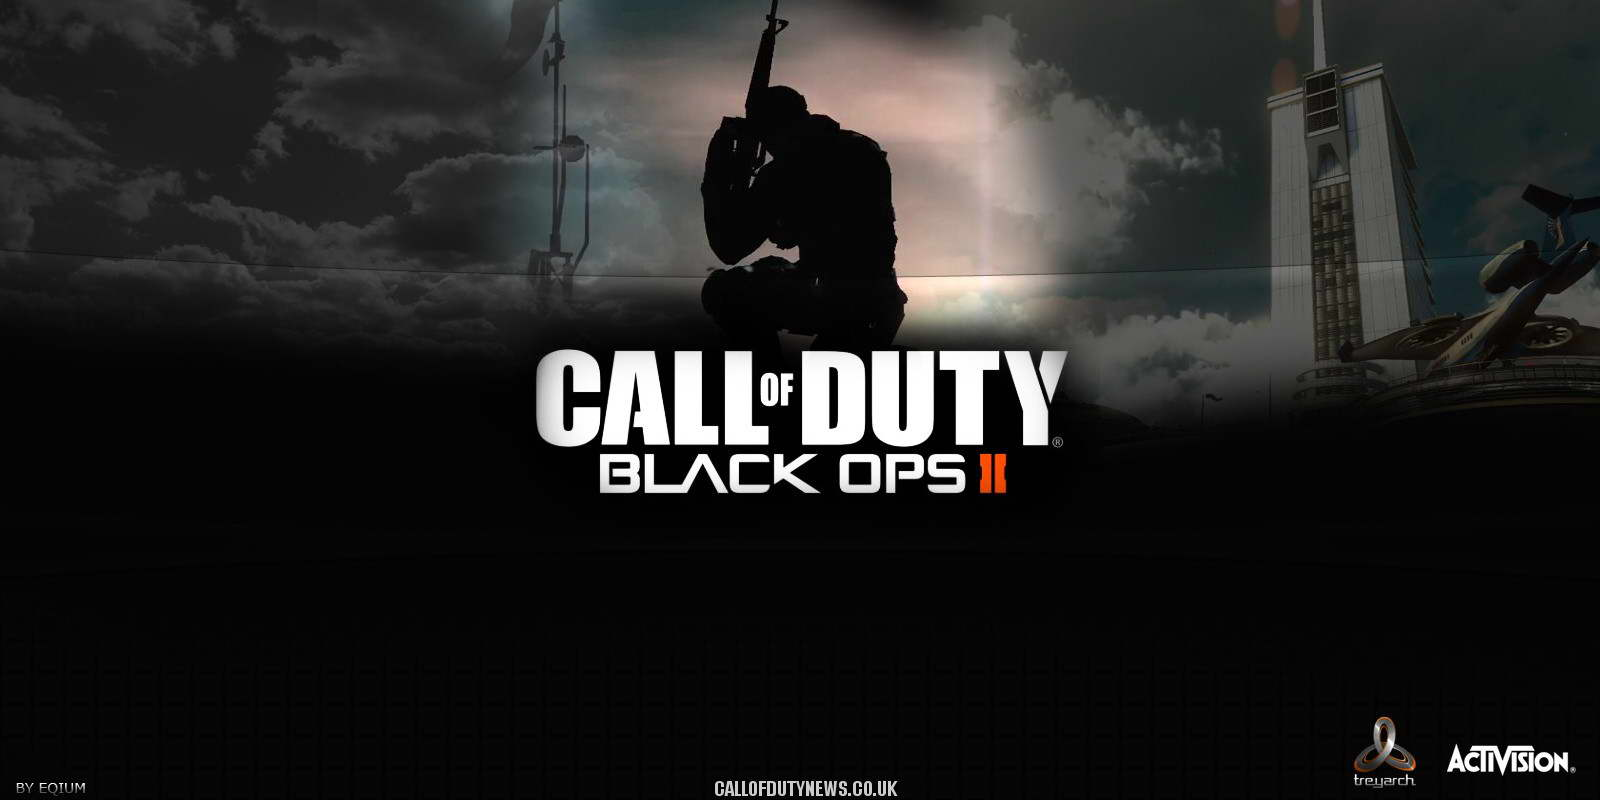 Free Download Call Of Duty Black Ops 2 Wallpaper Call Of Duty